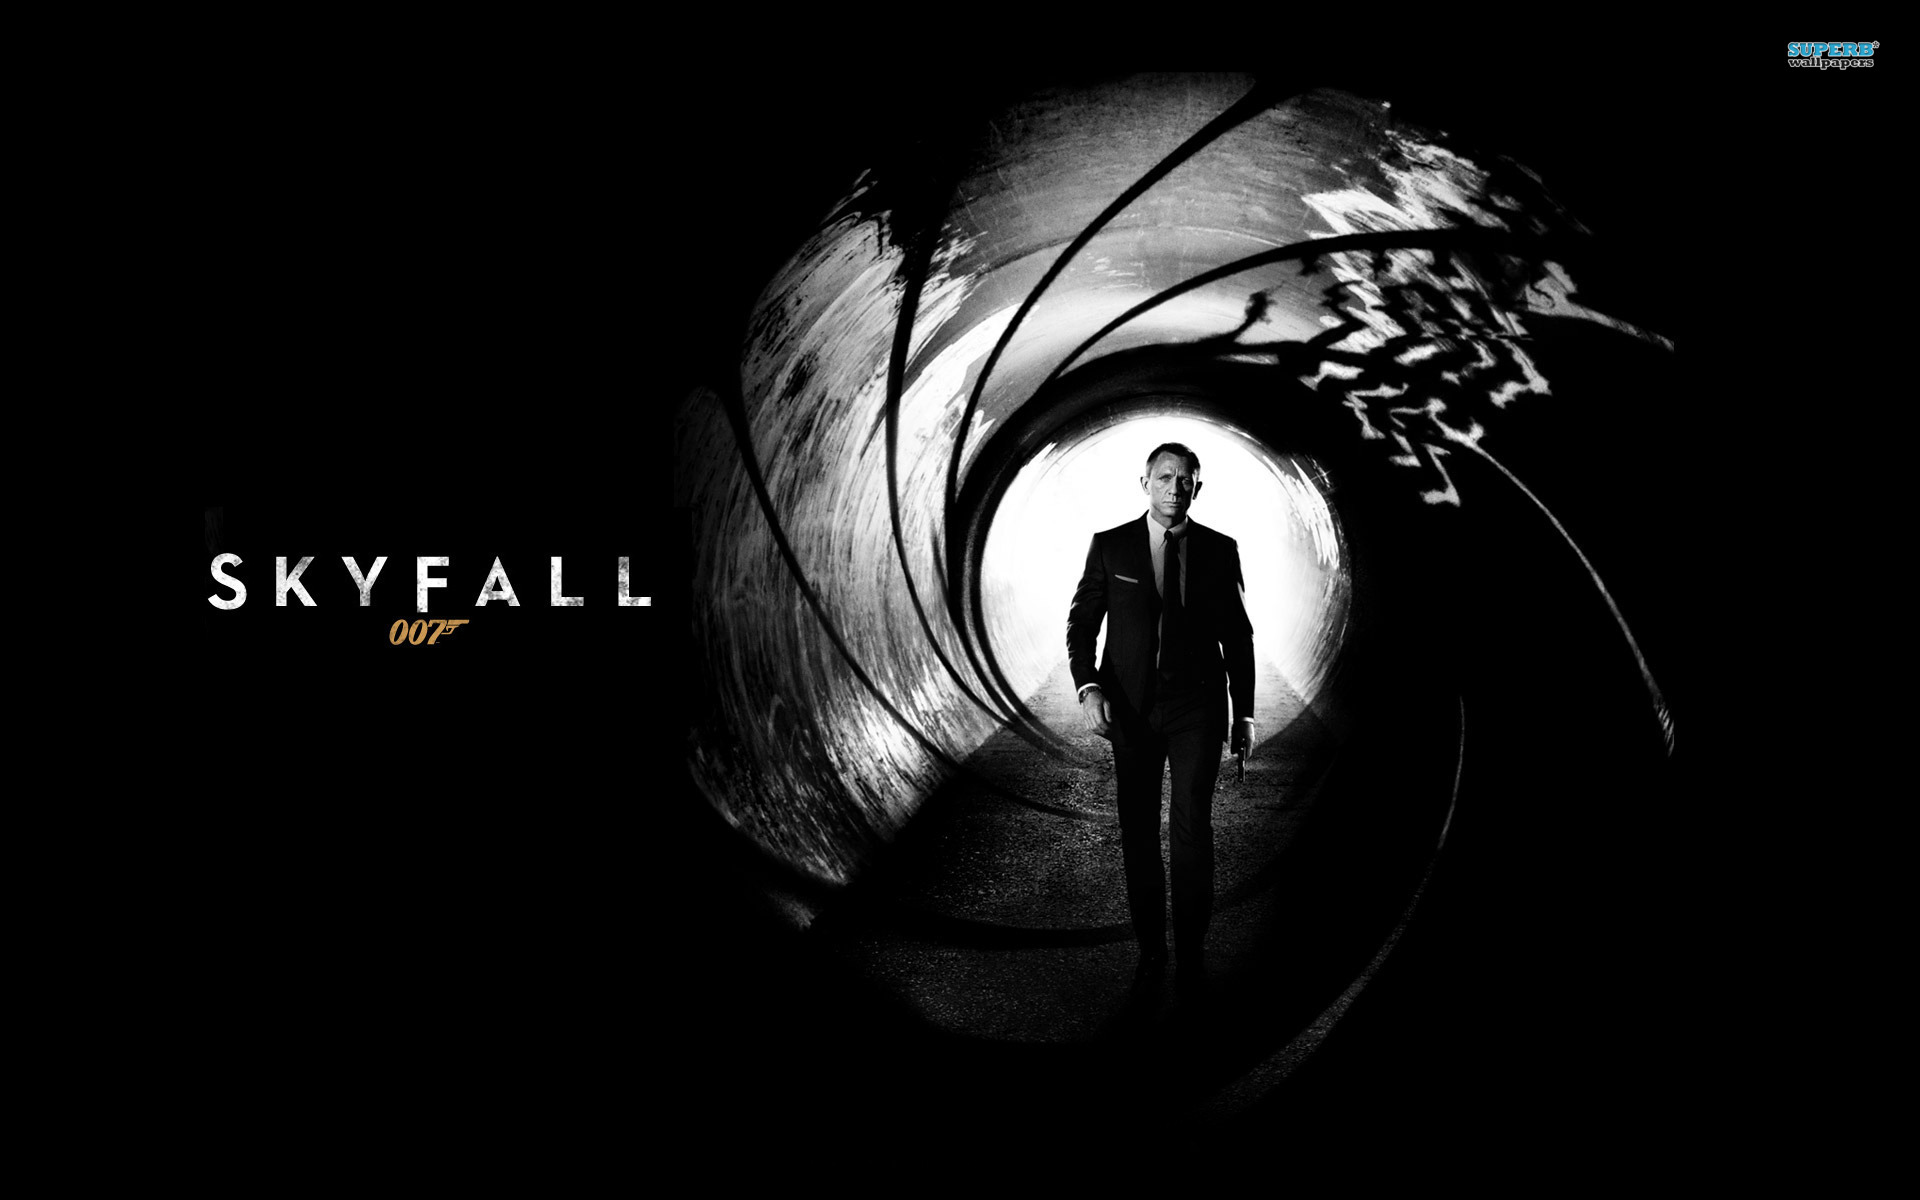 James Bond Wallpapers